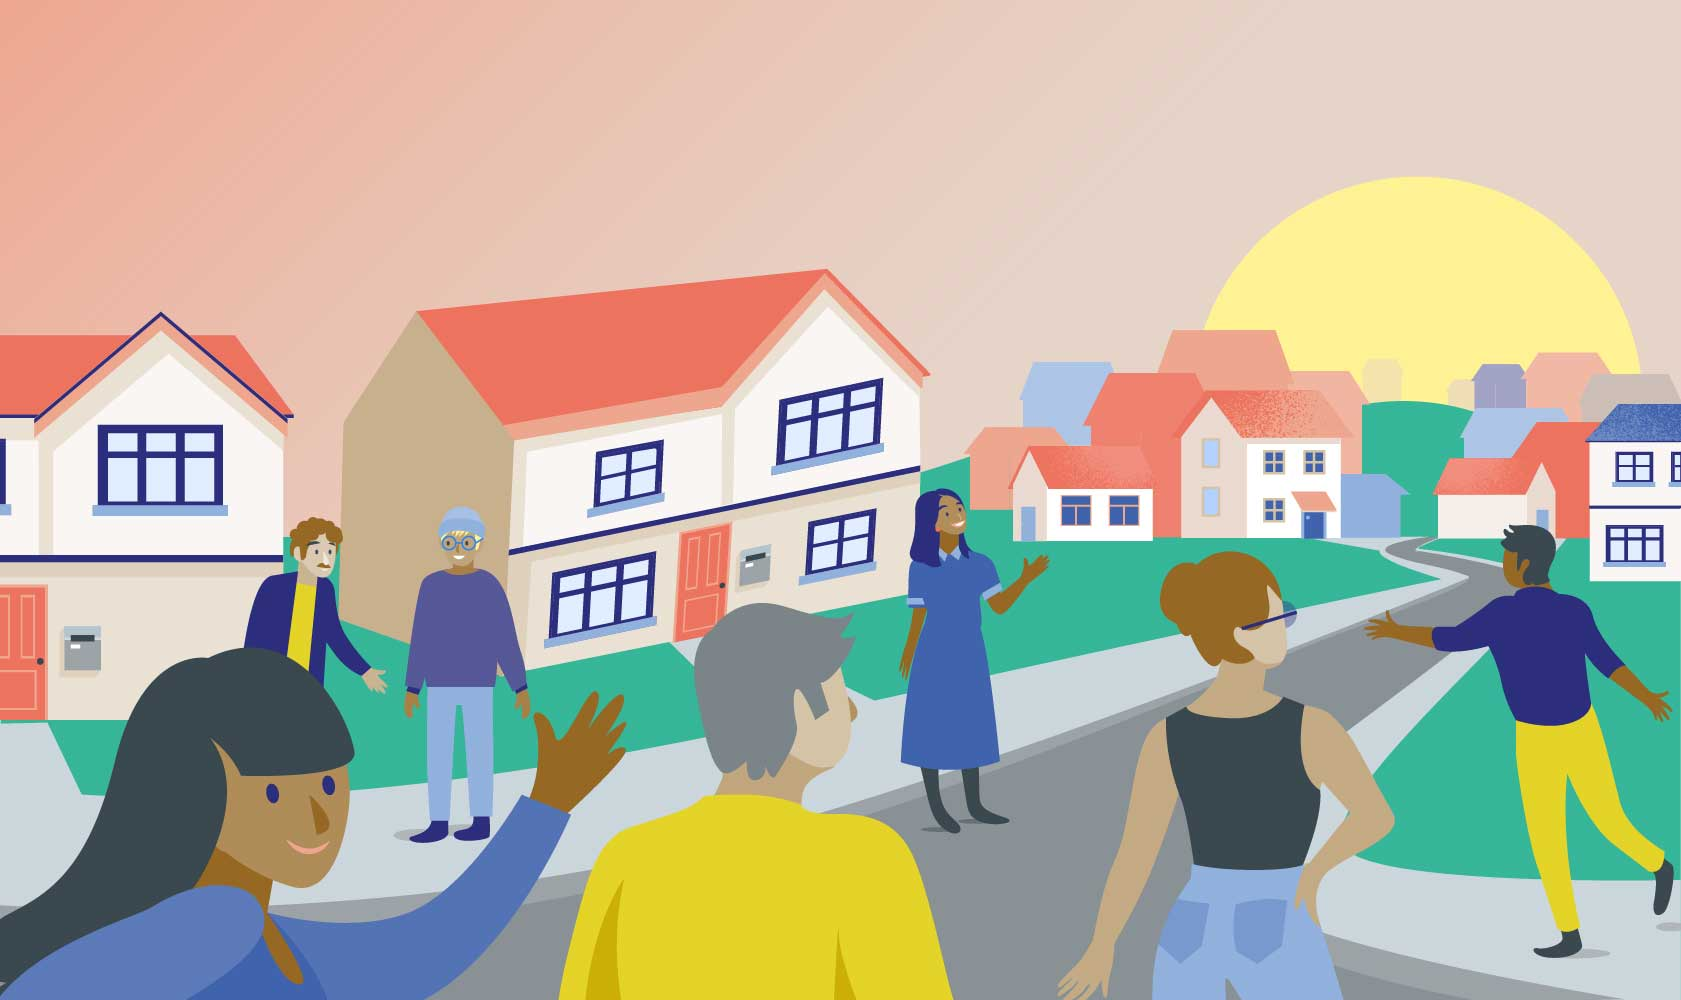 Longleigh Foundation - working within a social housing community